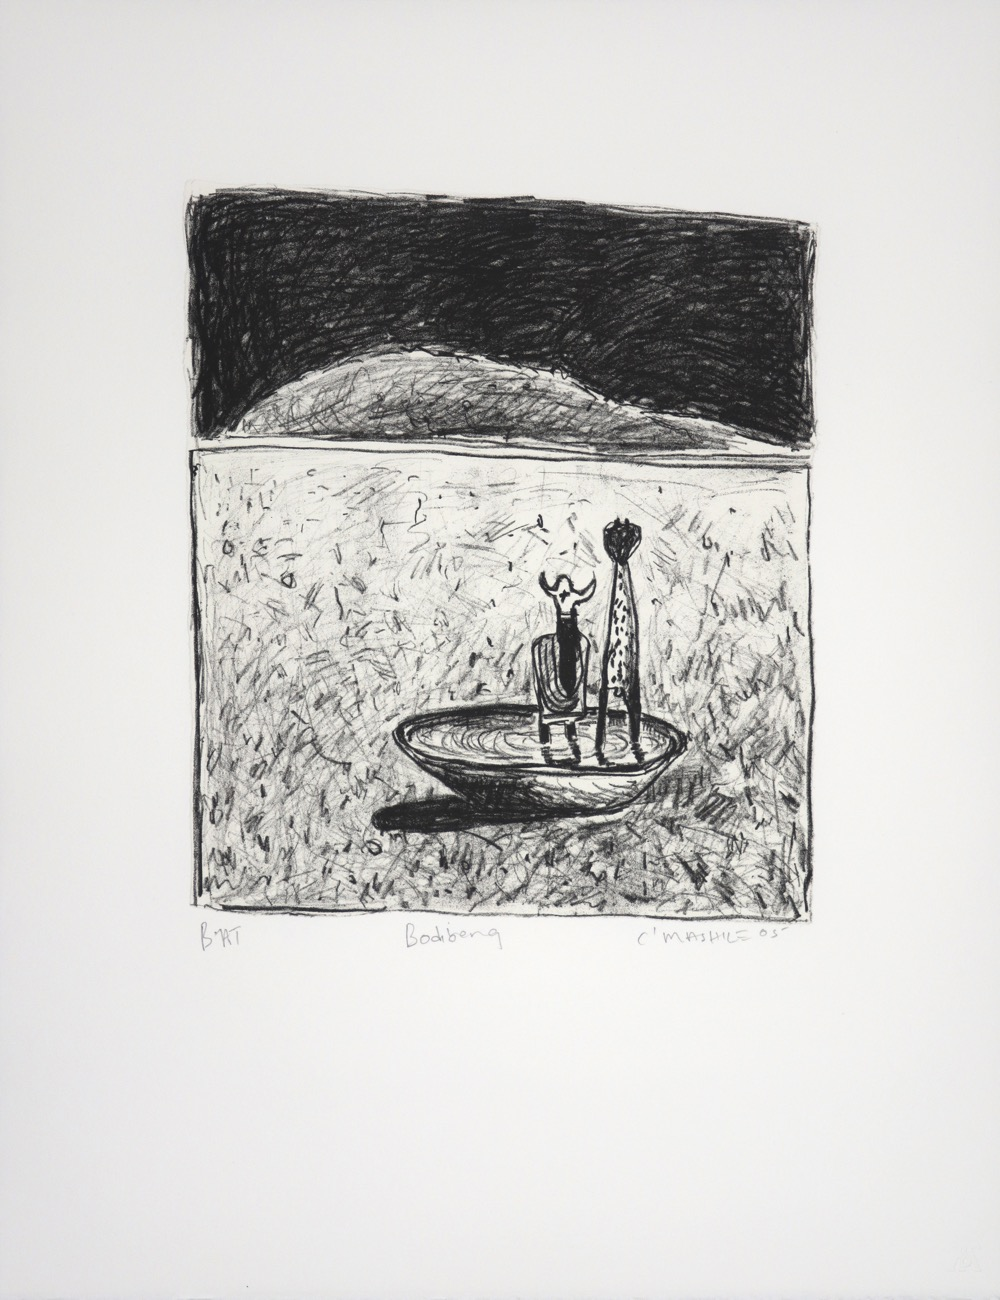 Two figures standing in a bowl of water set in a vast landscape.